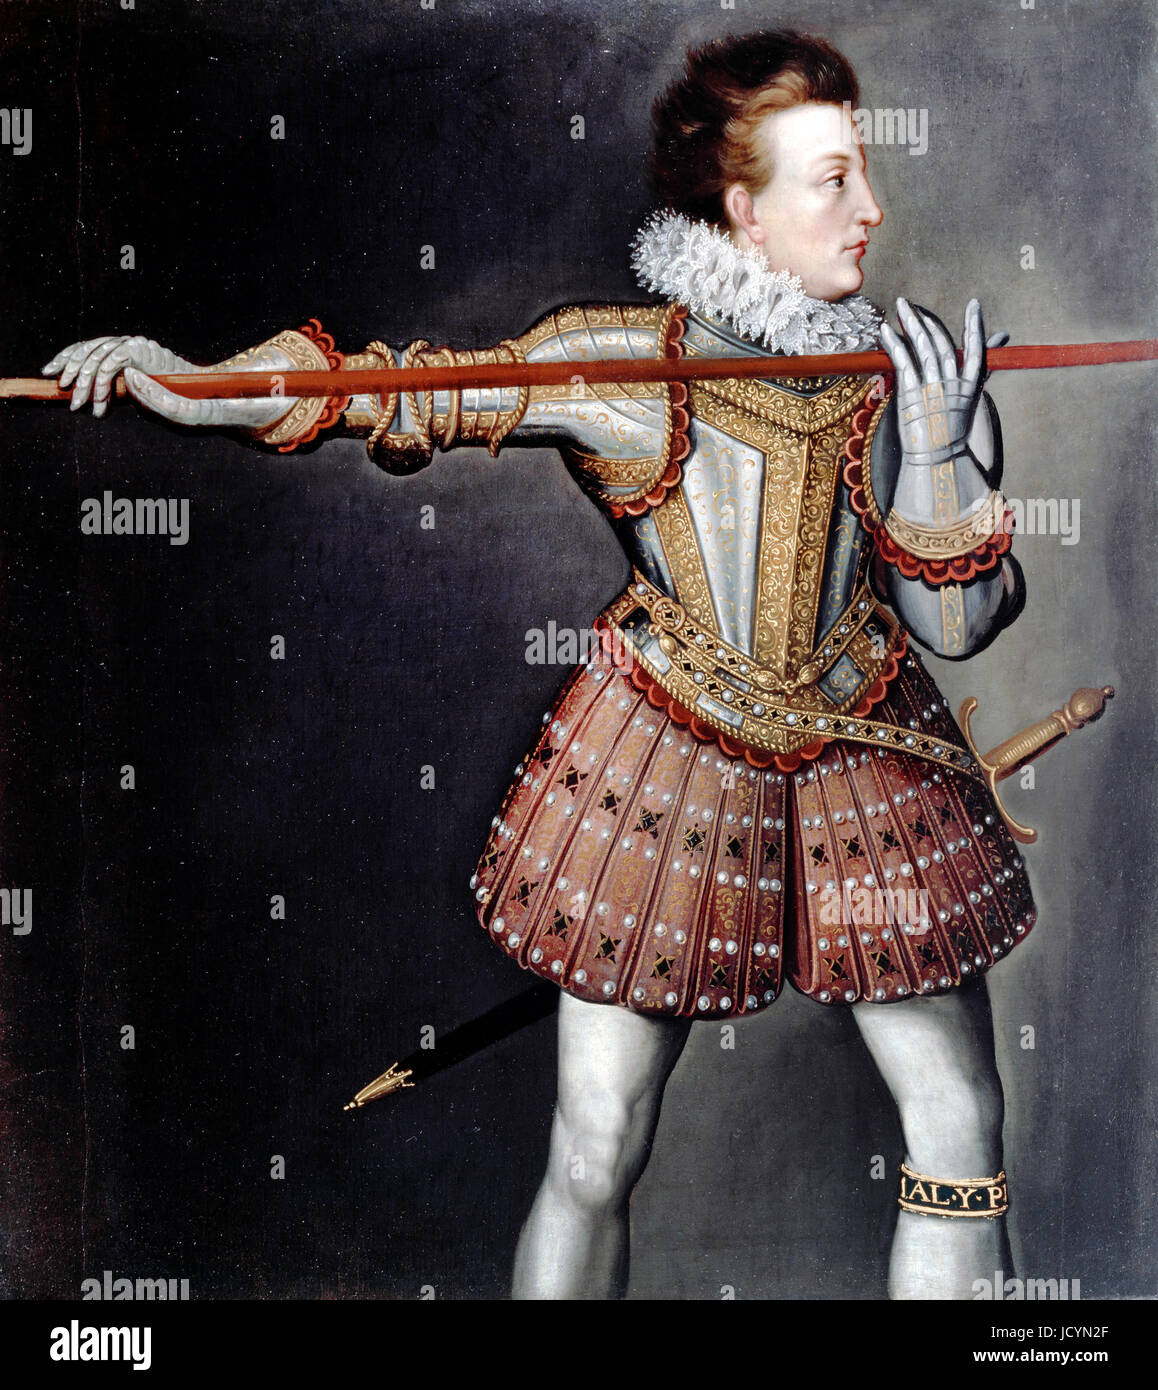 Isaac Oliver, Henry, Prince of Wales. Circa 1612-1626. Oil on canvas. Dulwich Picture Gallery, London, England. - Stock Image